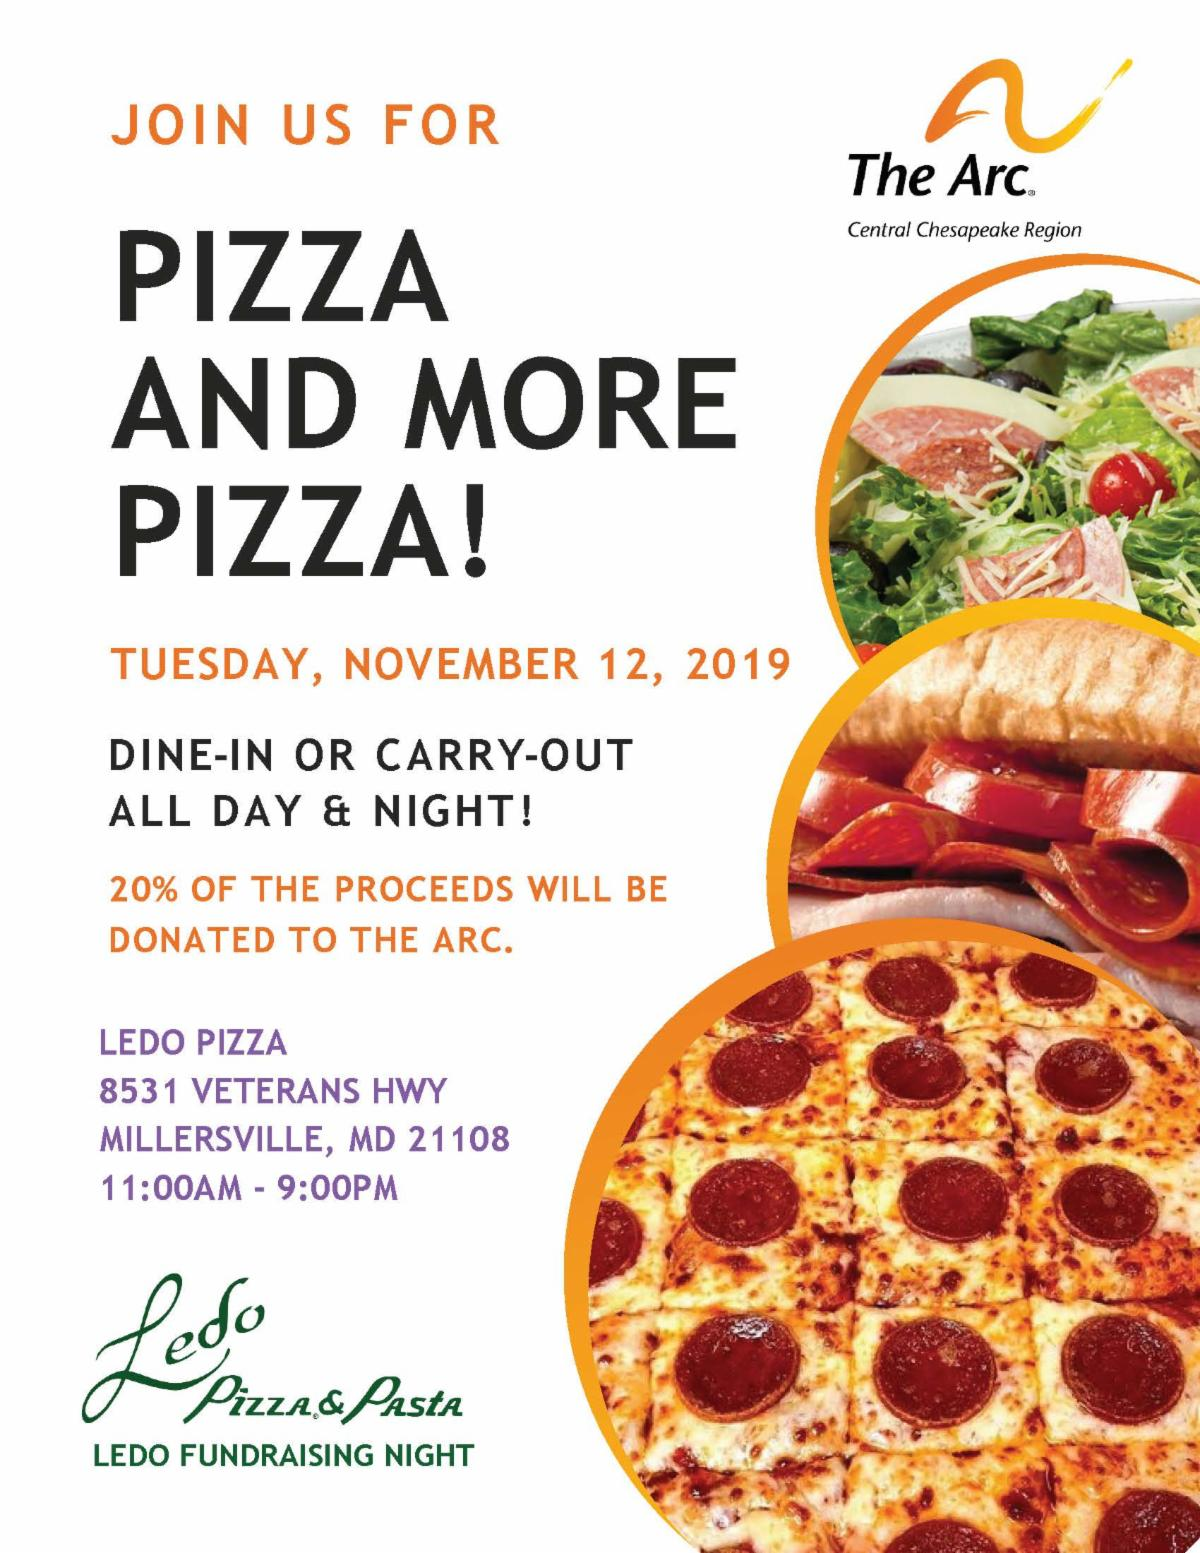 The Arc Central Chesapeake Region's Pizza and More Pizza Fundraiser on December 12th from 11 AM to 9 PM at Ledo Pizza in Millersville.